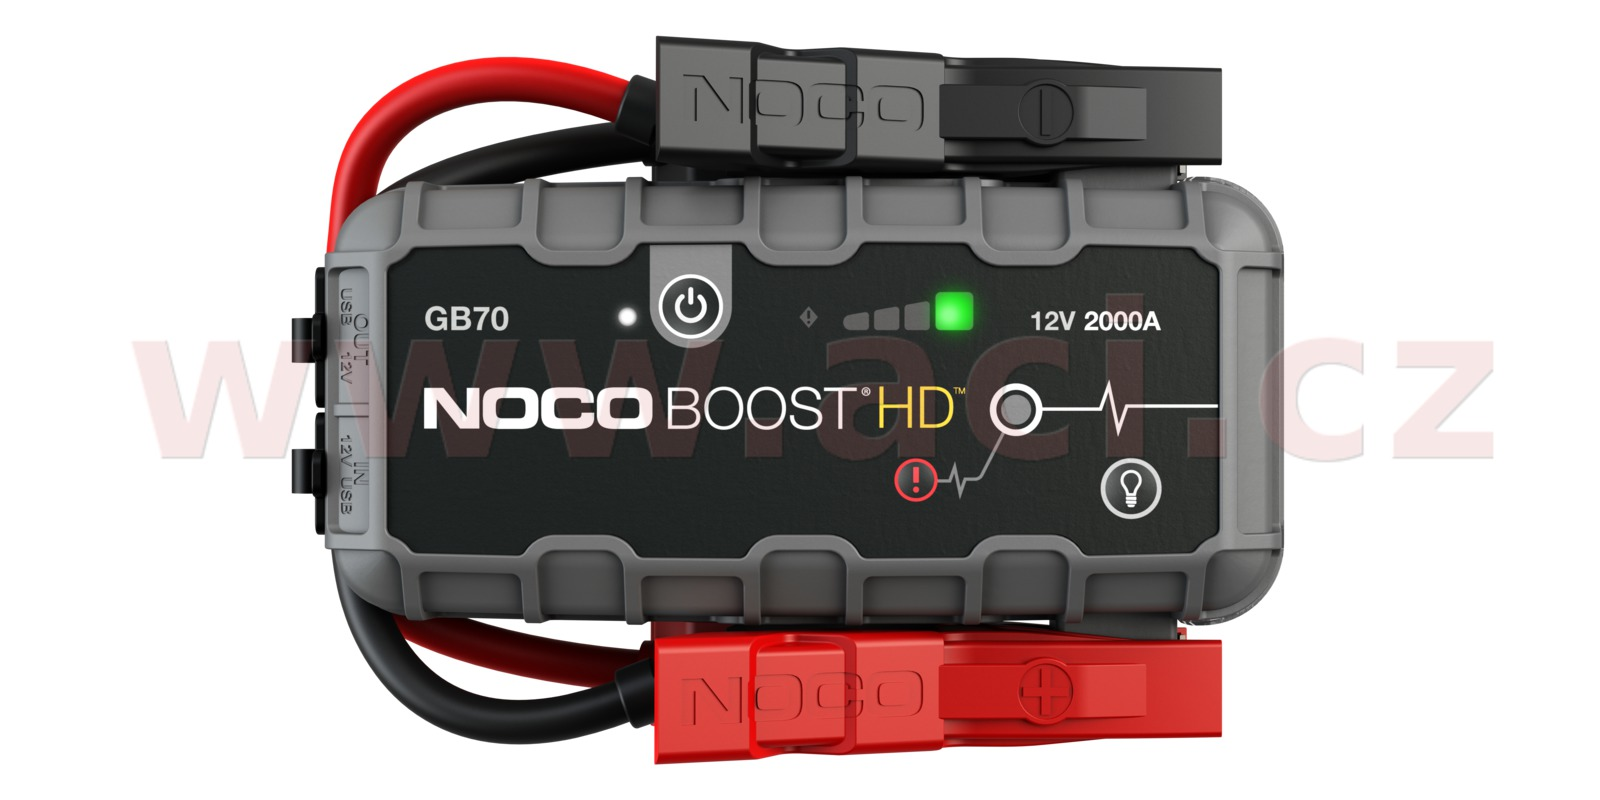 startovací box + power banka, startovací proud 2000 A, NOCO GENIUS BOOST HD GB70 (NOCO USA)